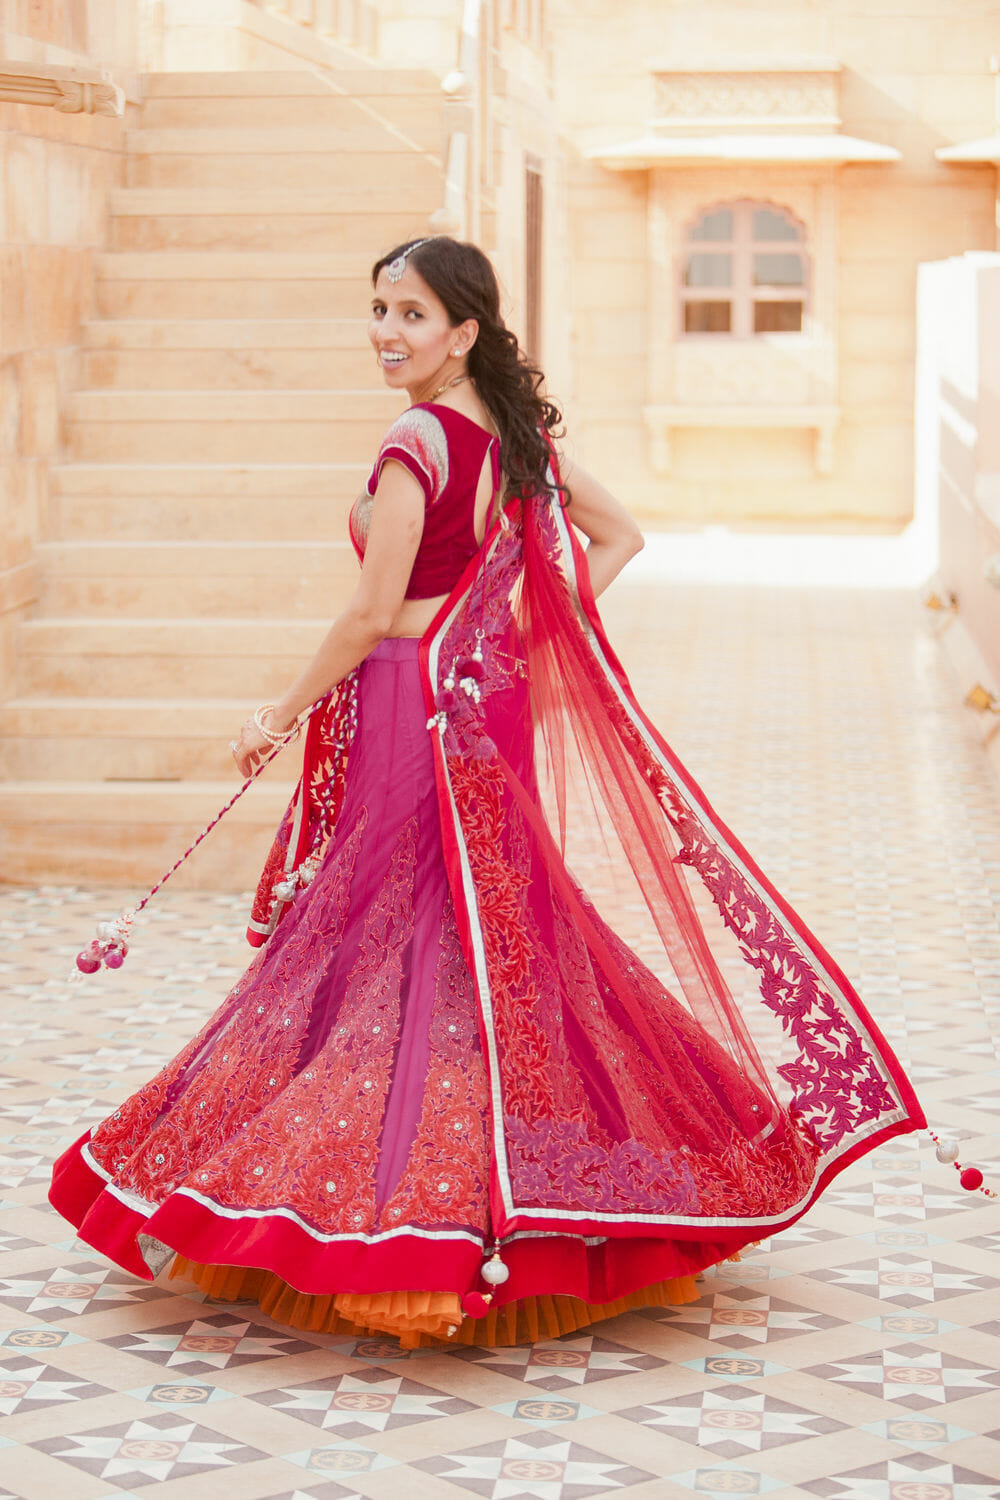 destination-indian-wedding-jaipur-anika-vijay-140